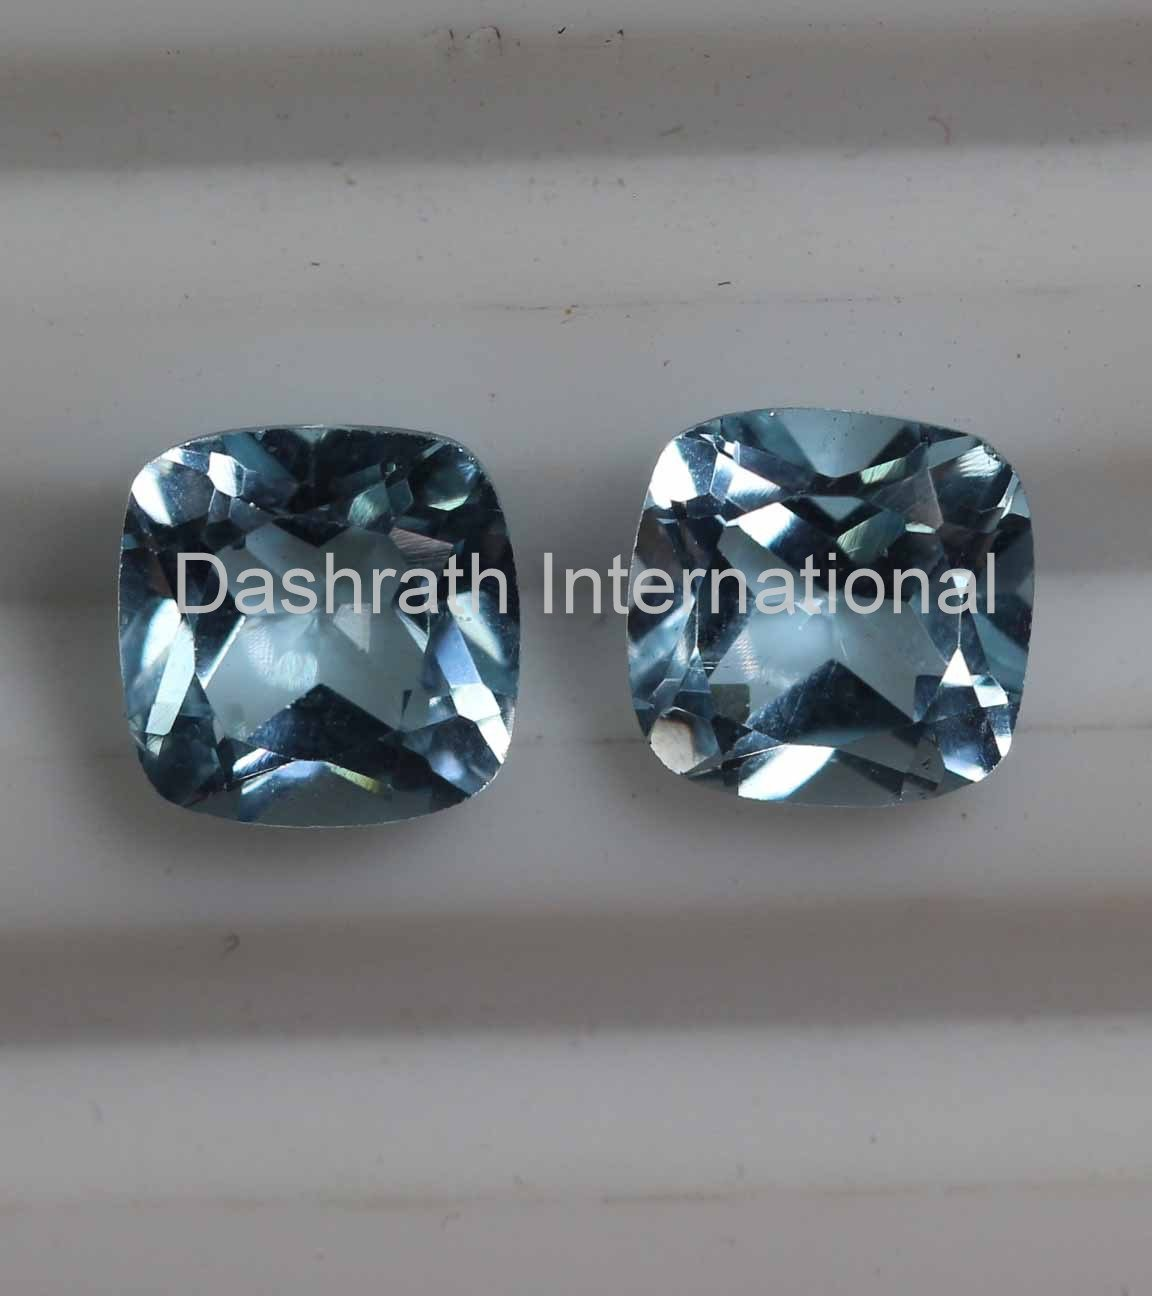 6mm Natural Sky Blue Topaz Faceted Cut Cushion 1 Piece  Top Quality Loose Gemstone